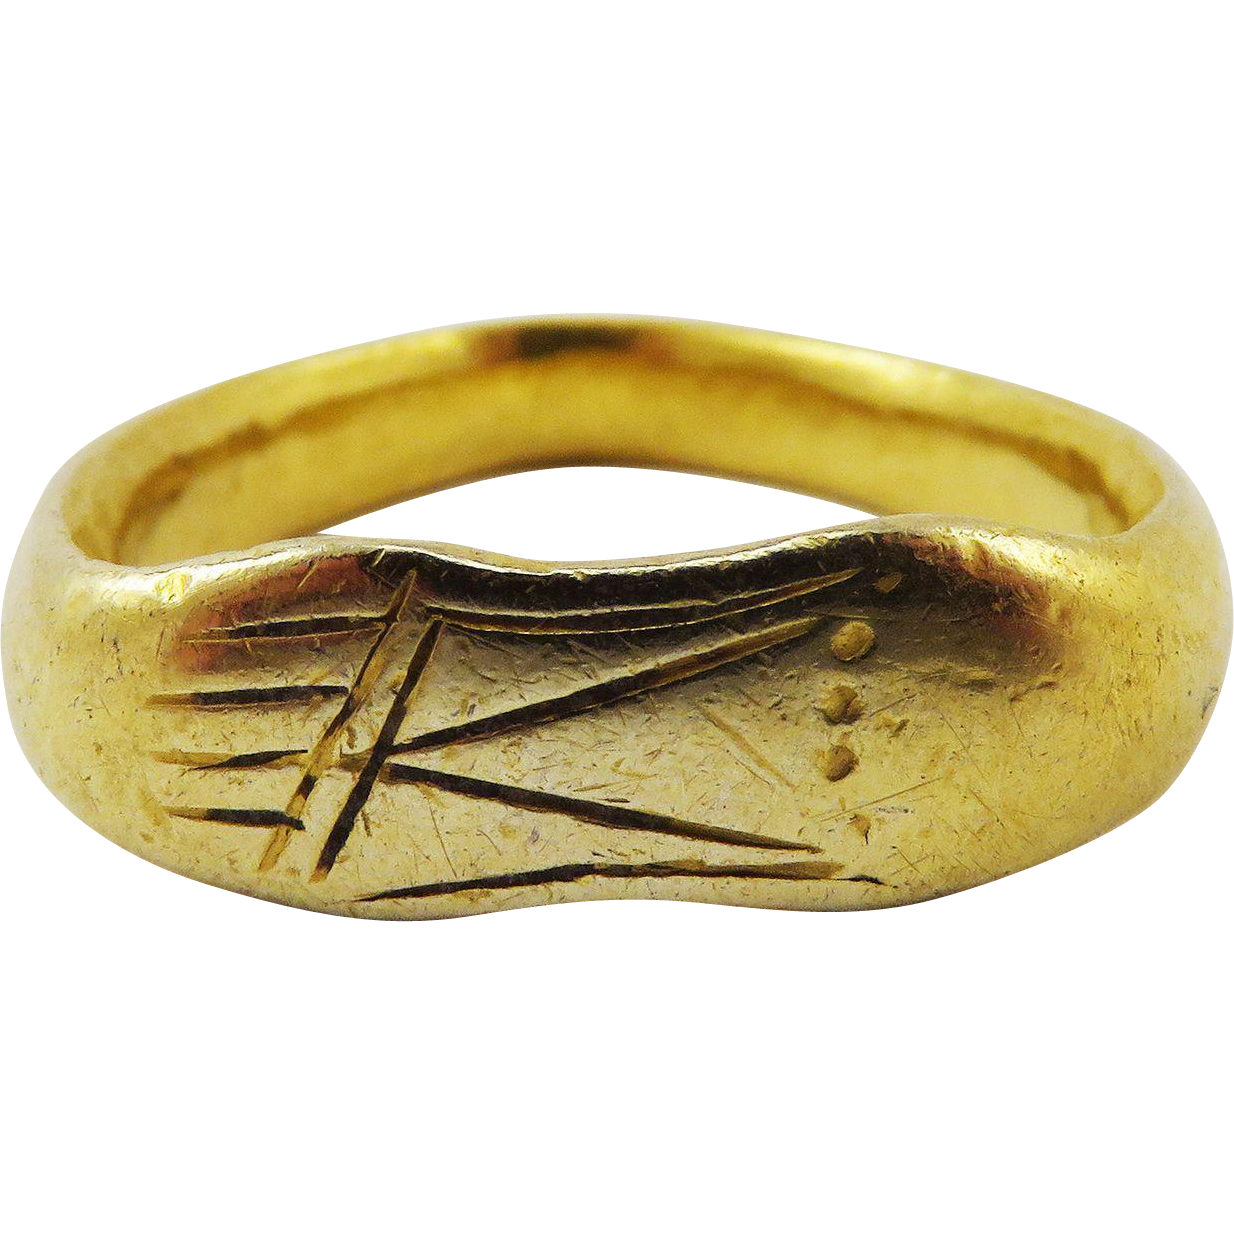 MUSEUM-WORTHY Unisex Ancient Romano-Celtic 22k Sandal-Motif Ring, 6.18 Grams, c.150 AD!